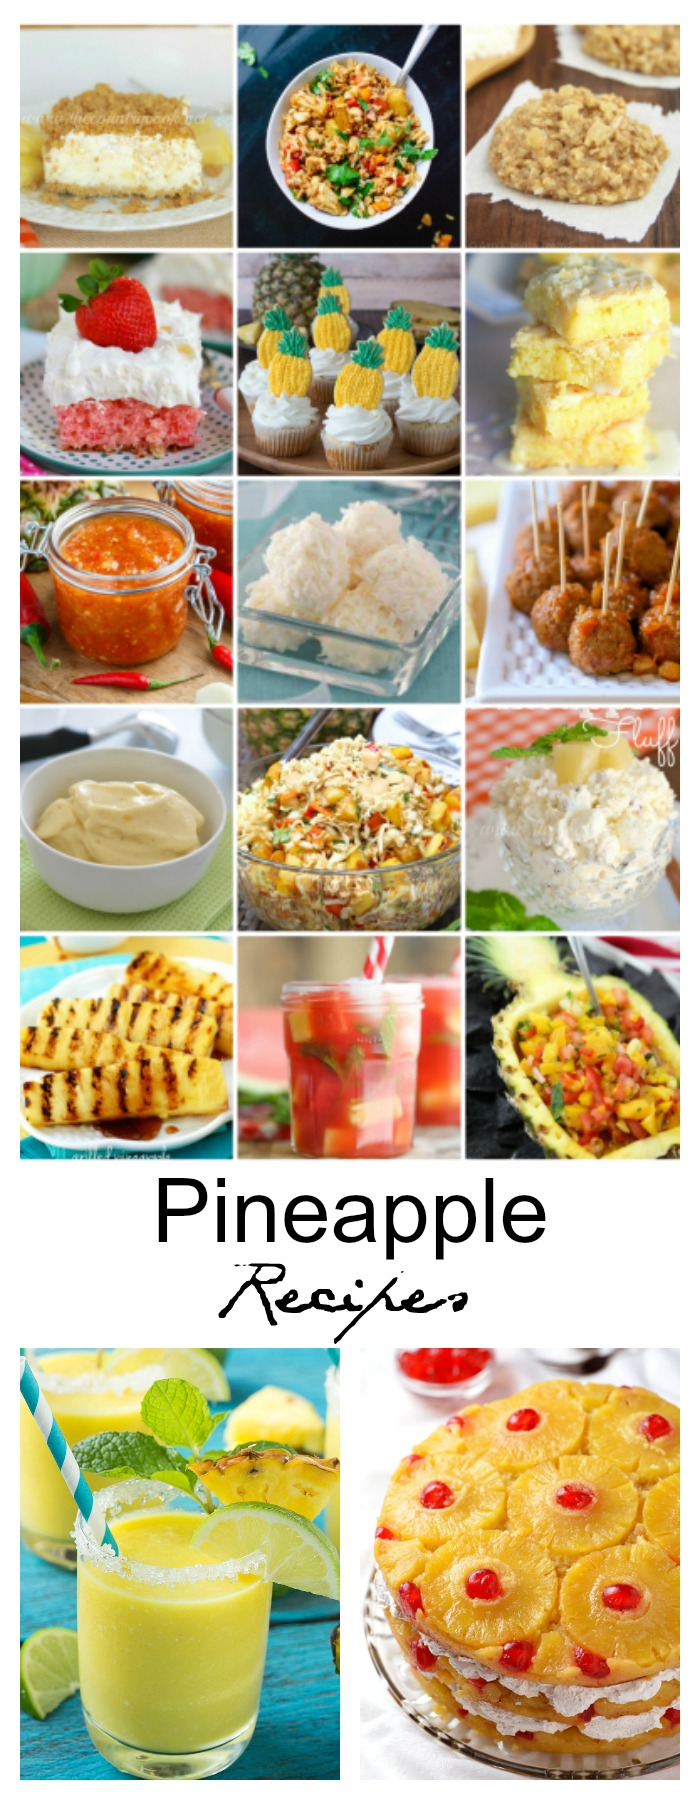 Pineapple-Recipes-Pin